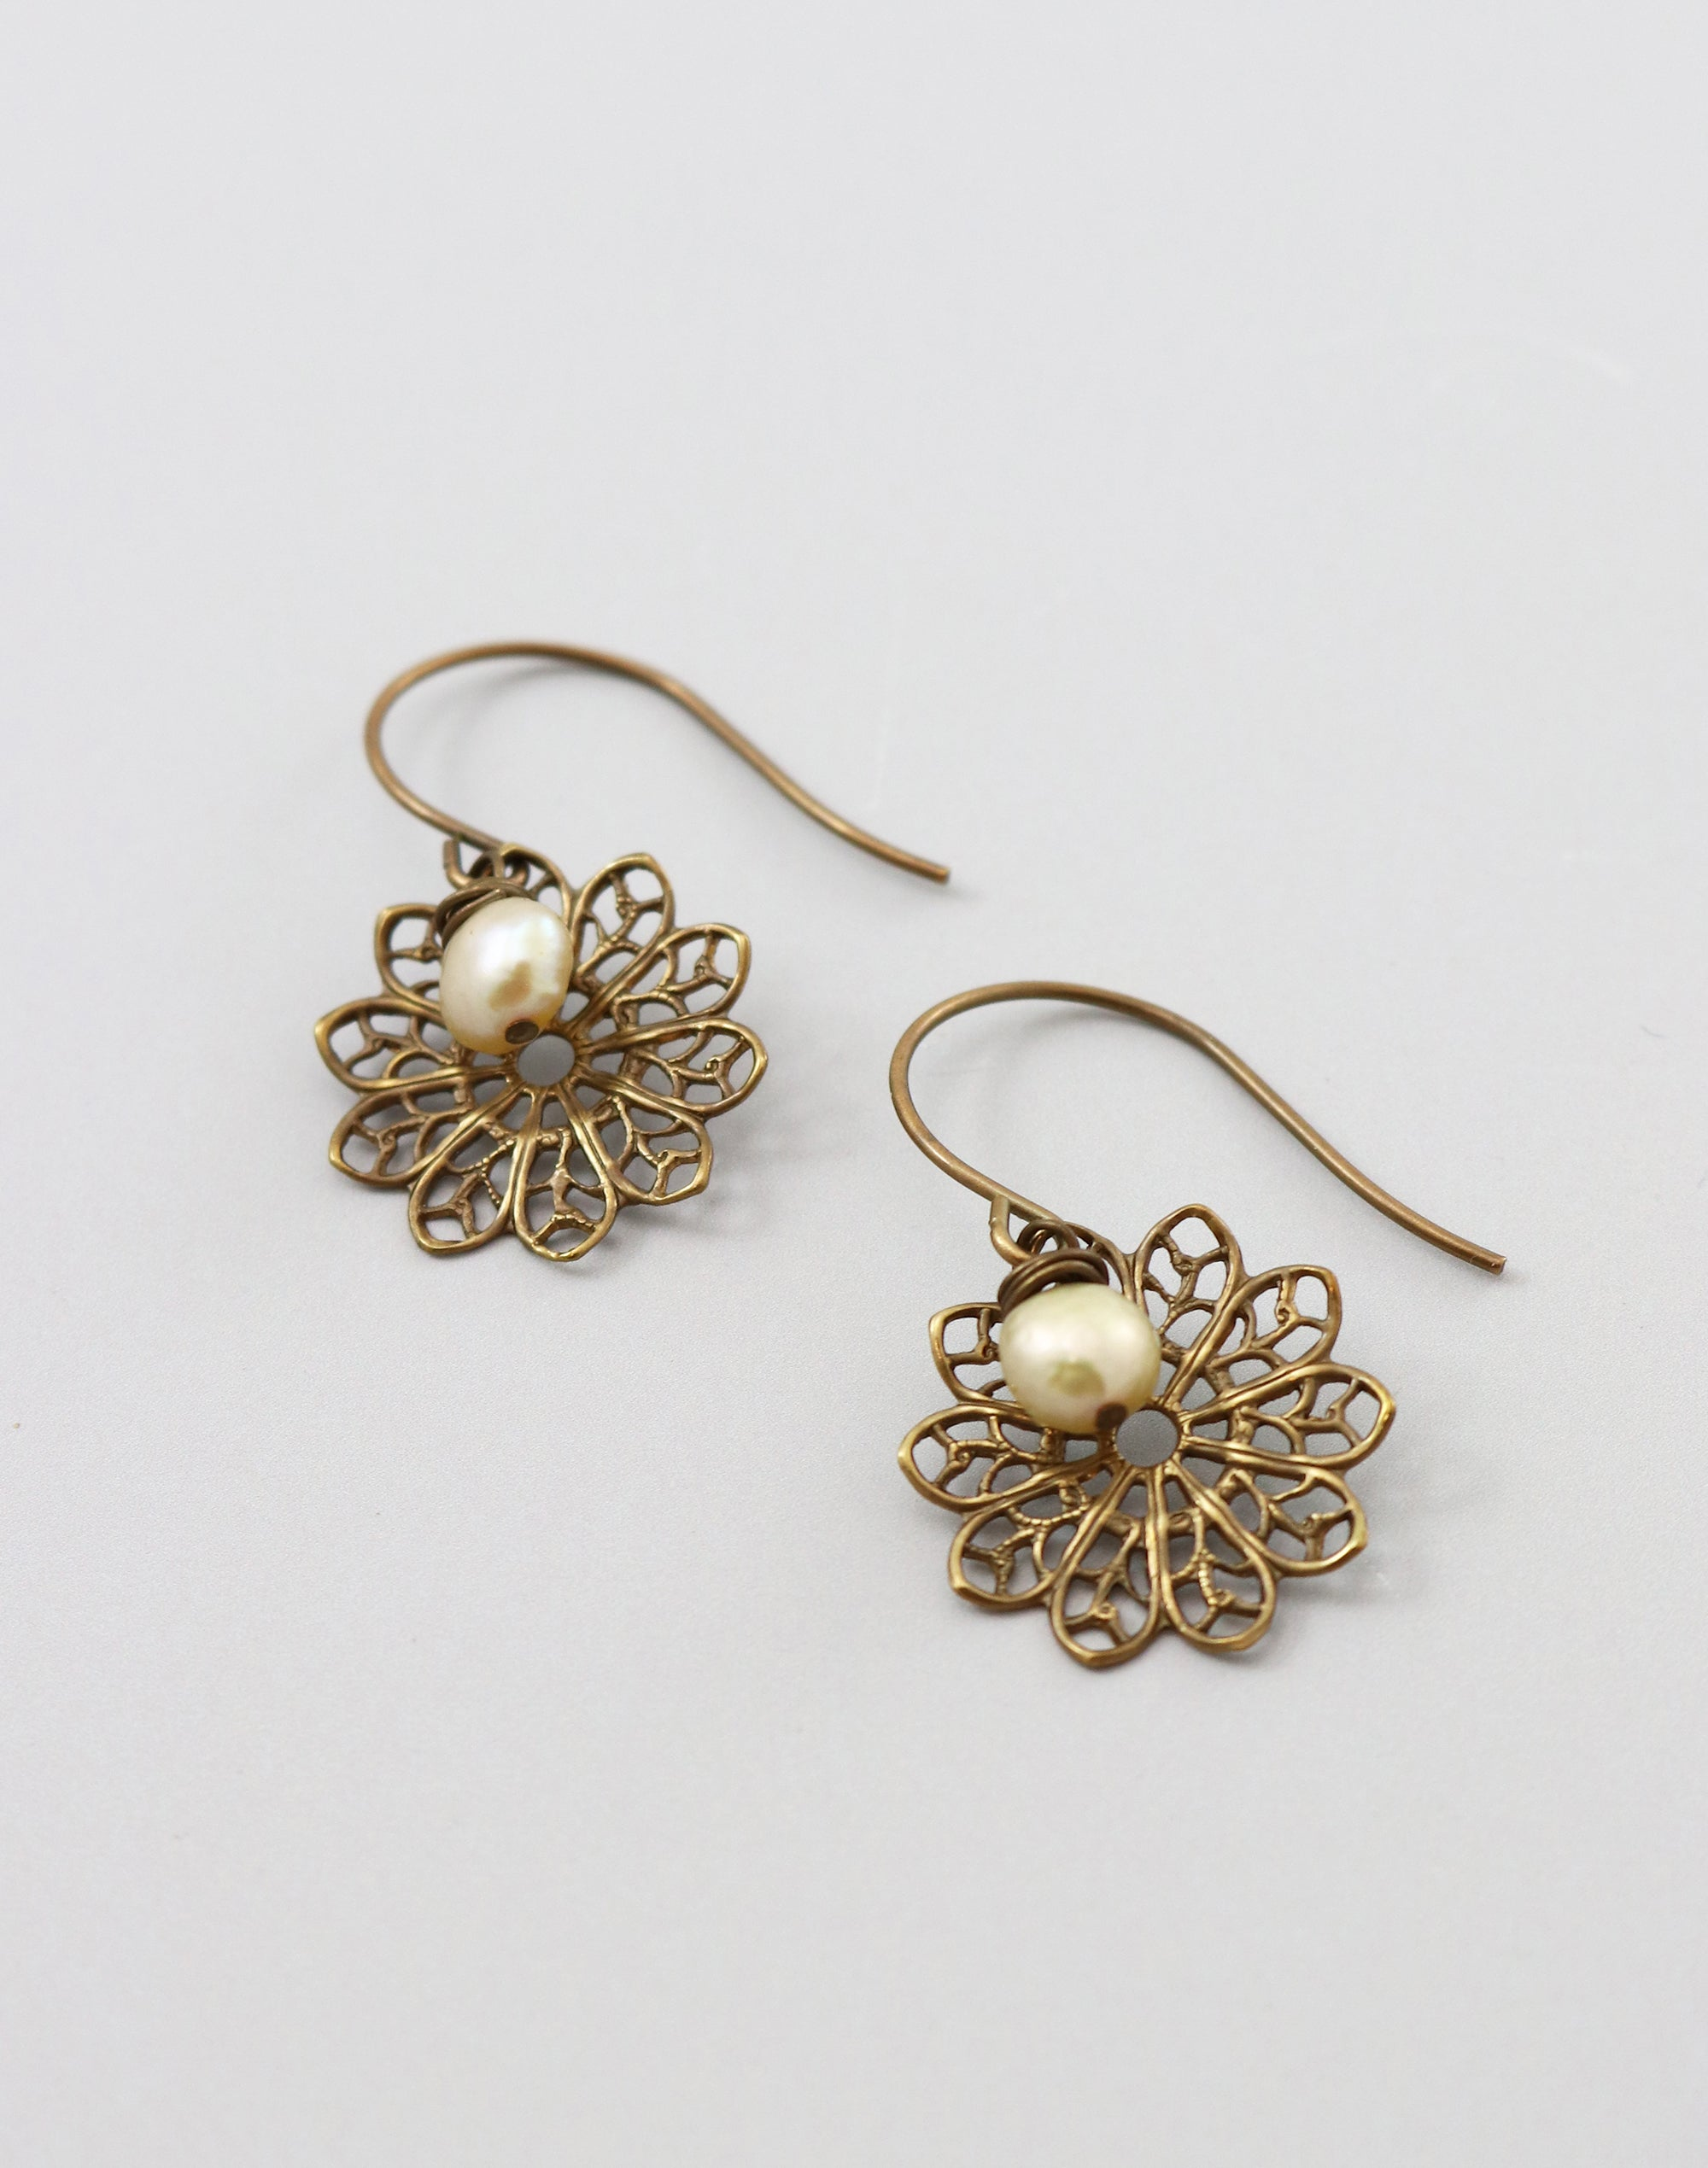 Precious Lace Earrings, (1 pair)